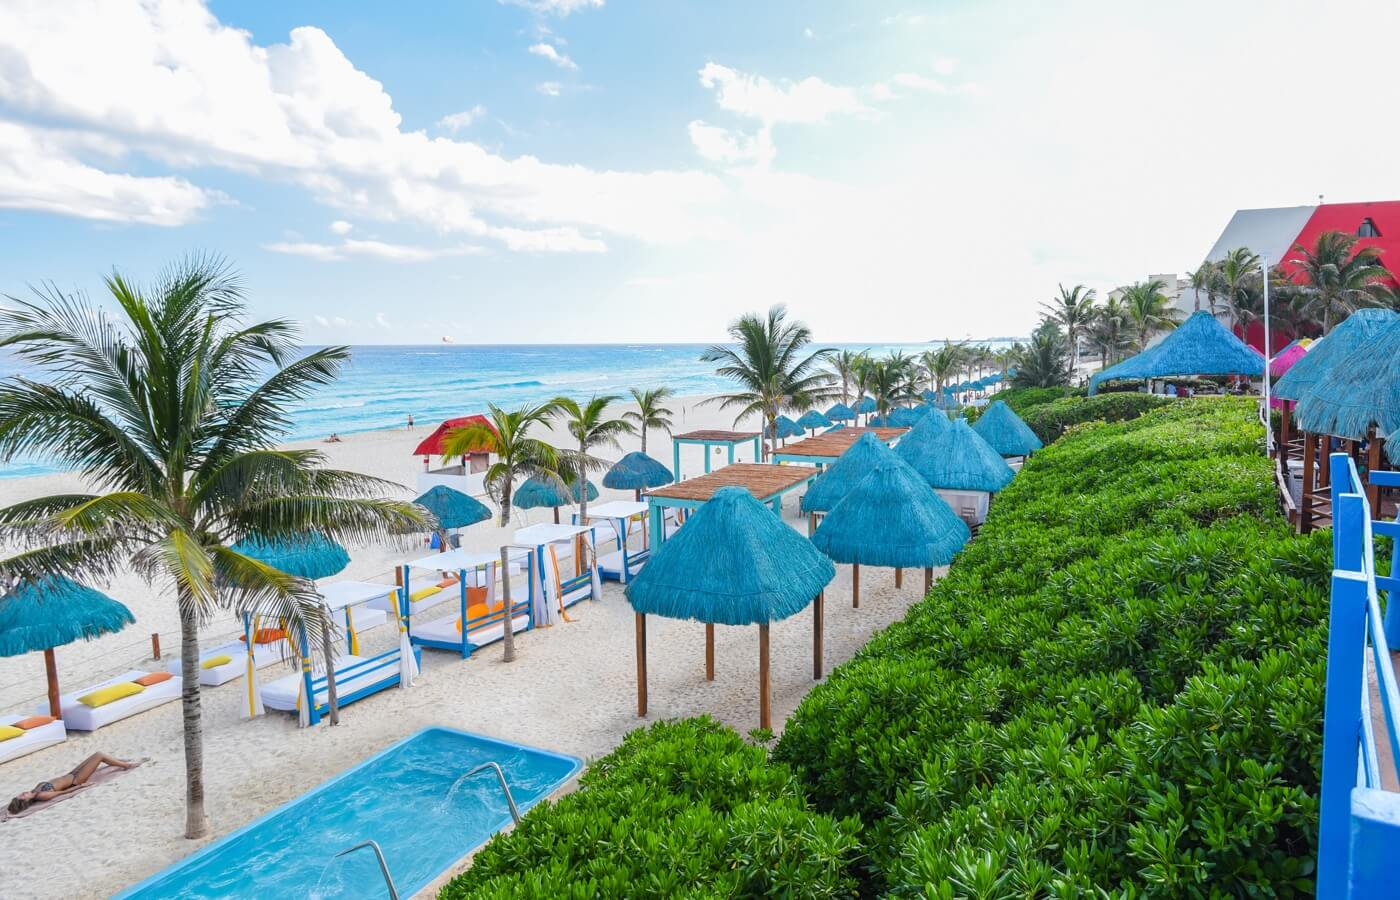 View to the beach with beds and palapas in Oasis hotels